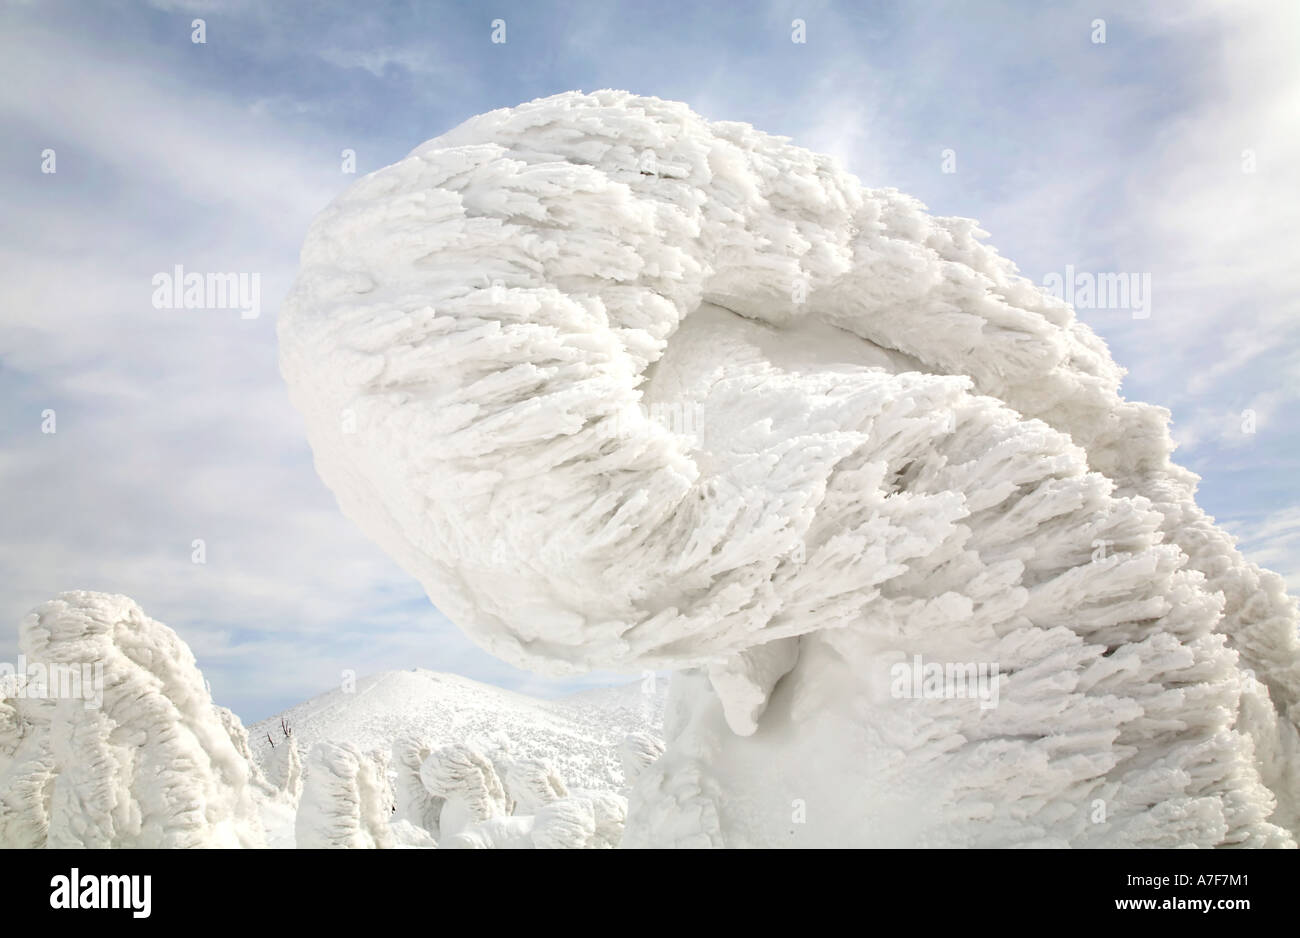 Snow Monsters - Trees with snow frozen on to them in winter Mount Hakkoda Japan Stock Photo